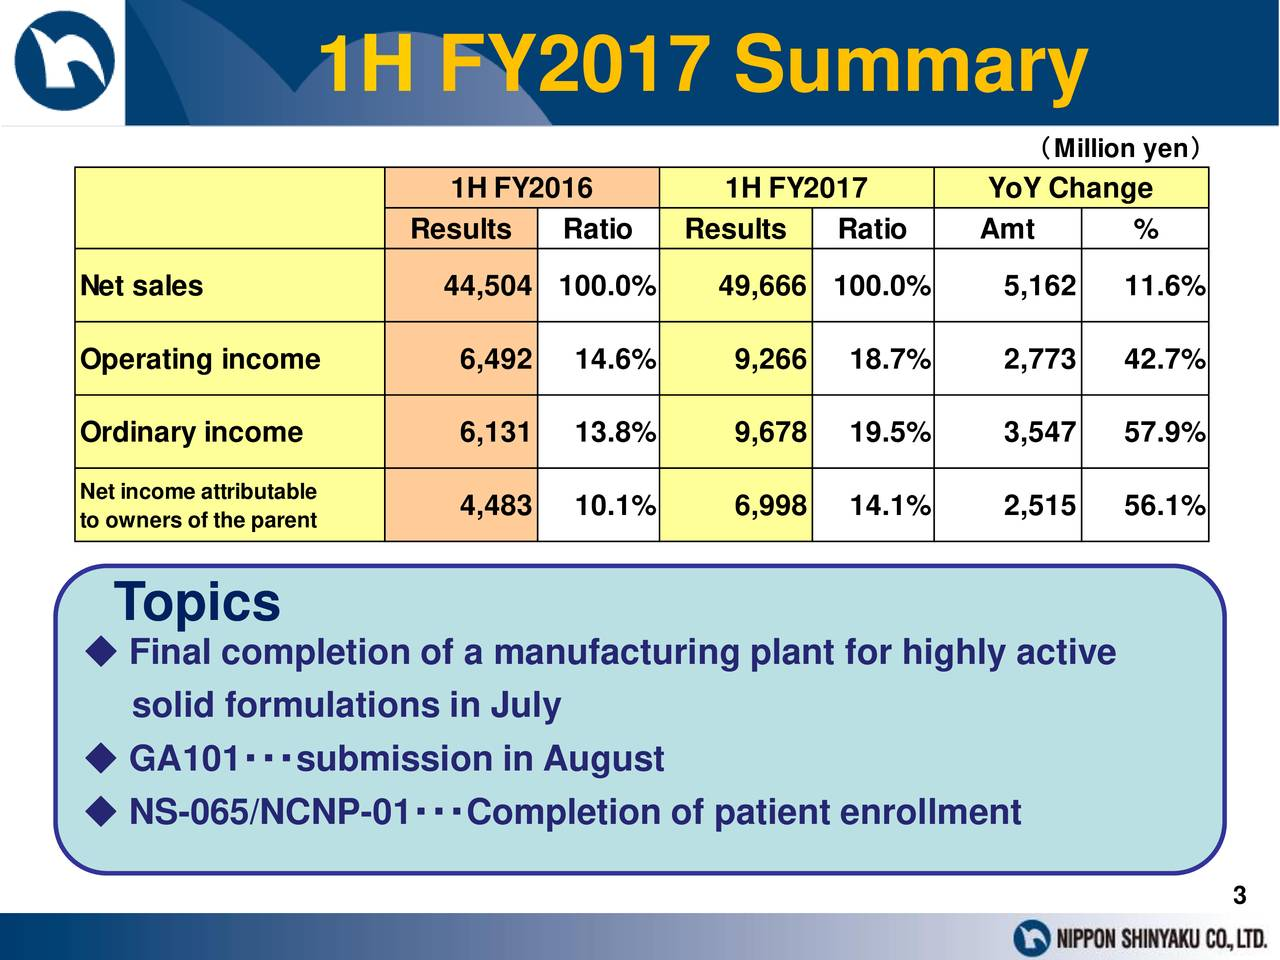 (Million yen) 1H FY2016 1H FY2017 YoY Change Results Ratio Results Ratio Amt % Net sales 44,504 100.0% 49,666 100.0% 5,162 11.6% Operating income 6,492 14.6% 9,266 18.7% 2,773 42.7% Ordinary income 6,131 13.8% 9,678 19.5% 3,547 57.9% Net income attributable to owners of the parent 4,483 10.1% 6,998 14.1% 2,515 56.1% Topics ◆ Final completion of a manufacturing plant for highly active solid formulations in July ◆ GA101・・・submission in August ◆ NS-065/NCNP-01・・・Completion of patient enrollment 3